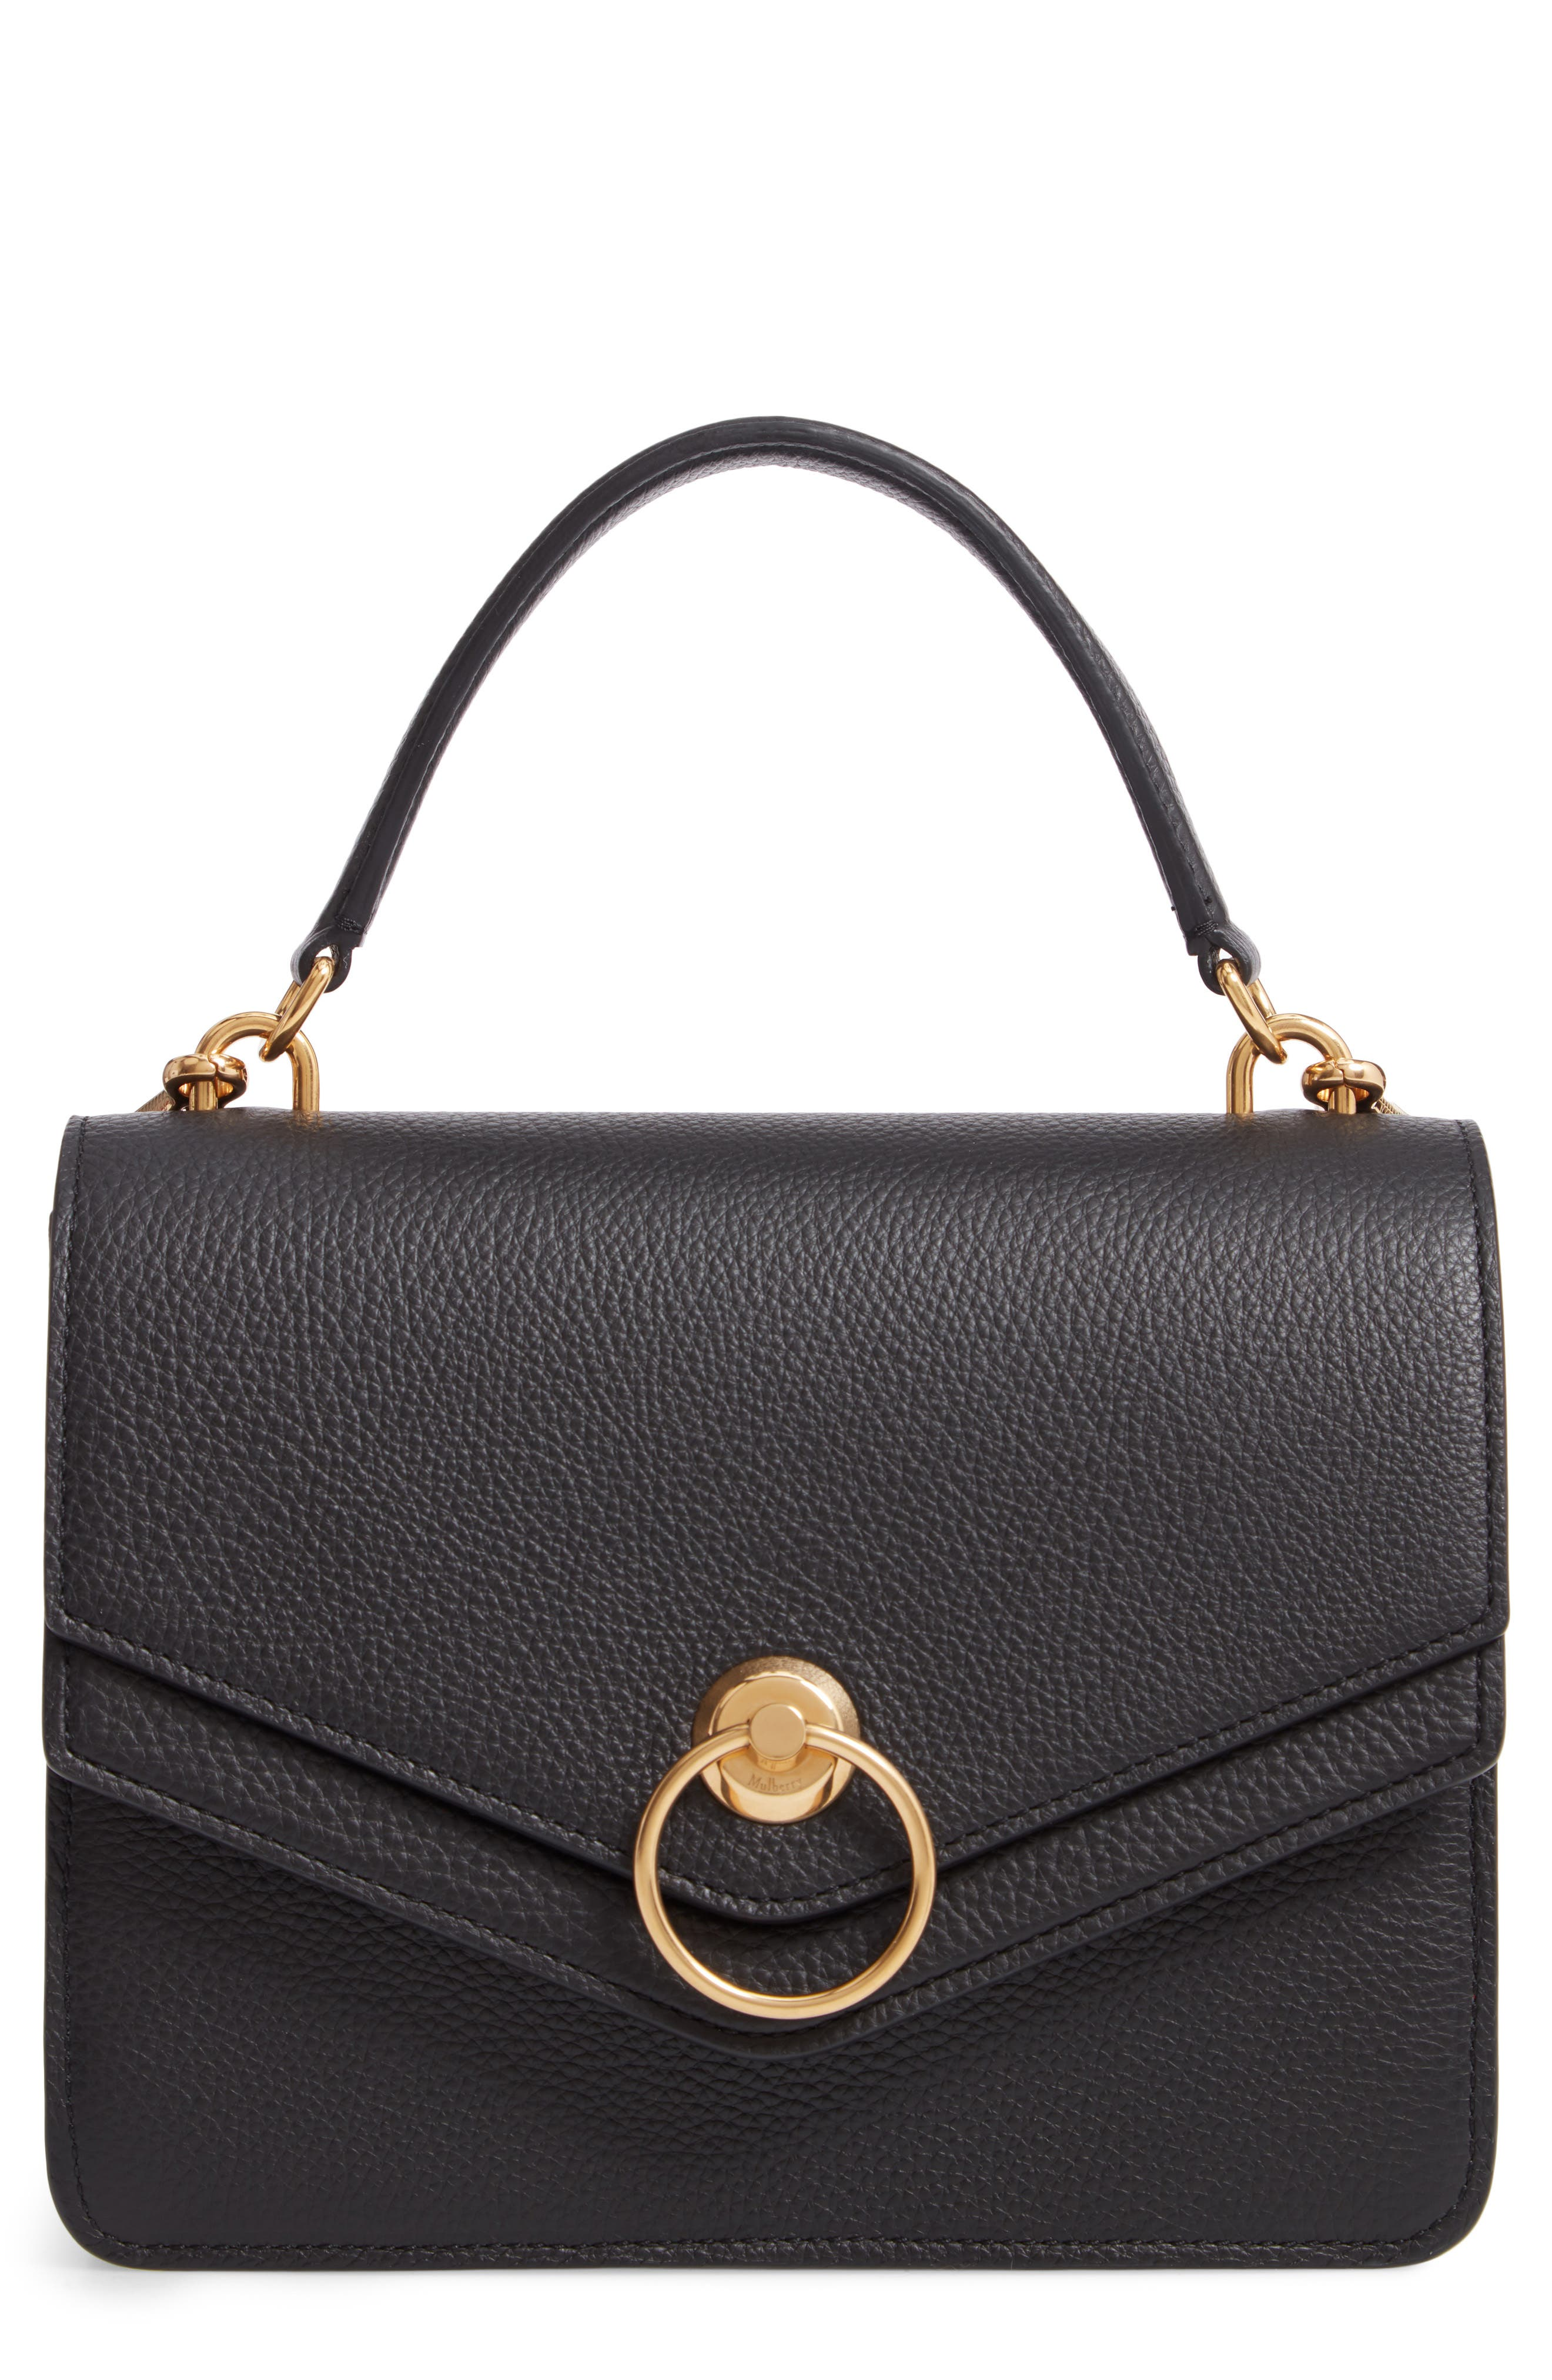 MULBERRY Mulberrry Harlow Calfskin Leather Satchel - Black